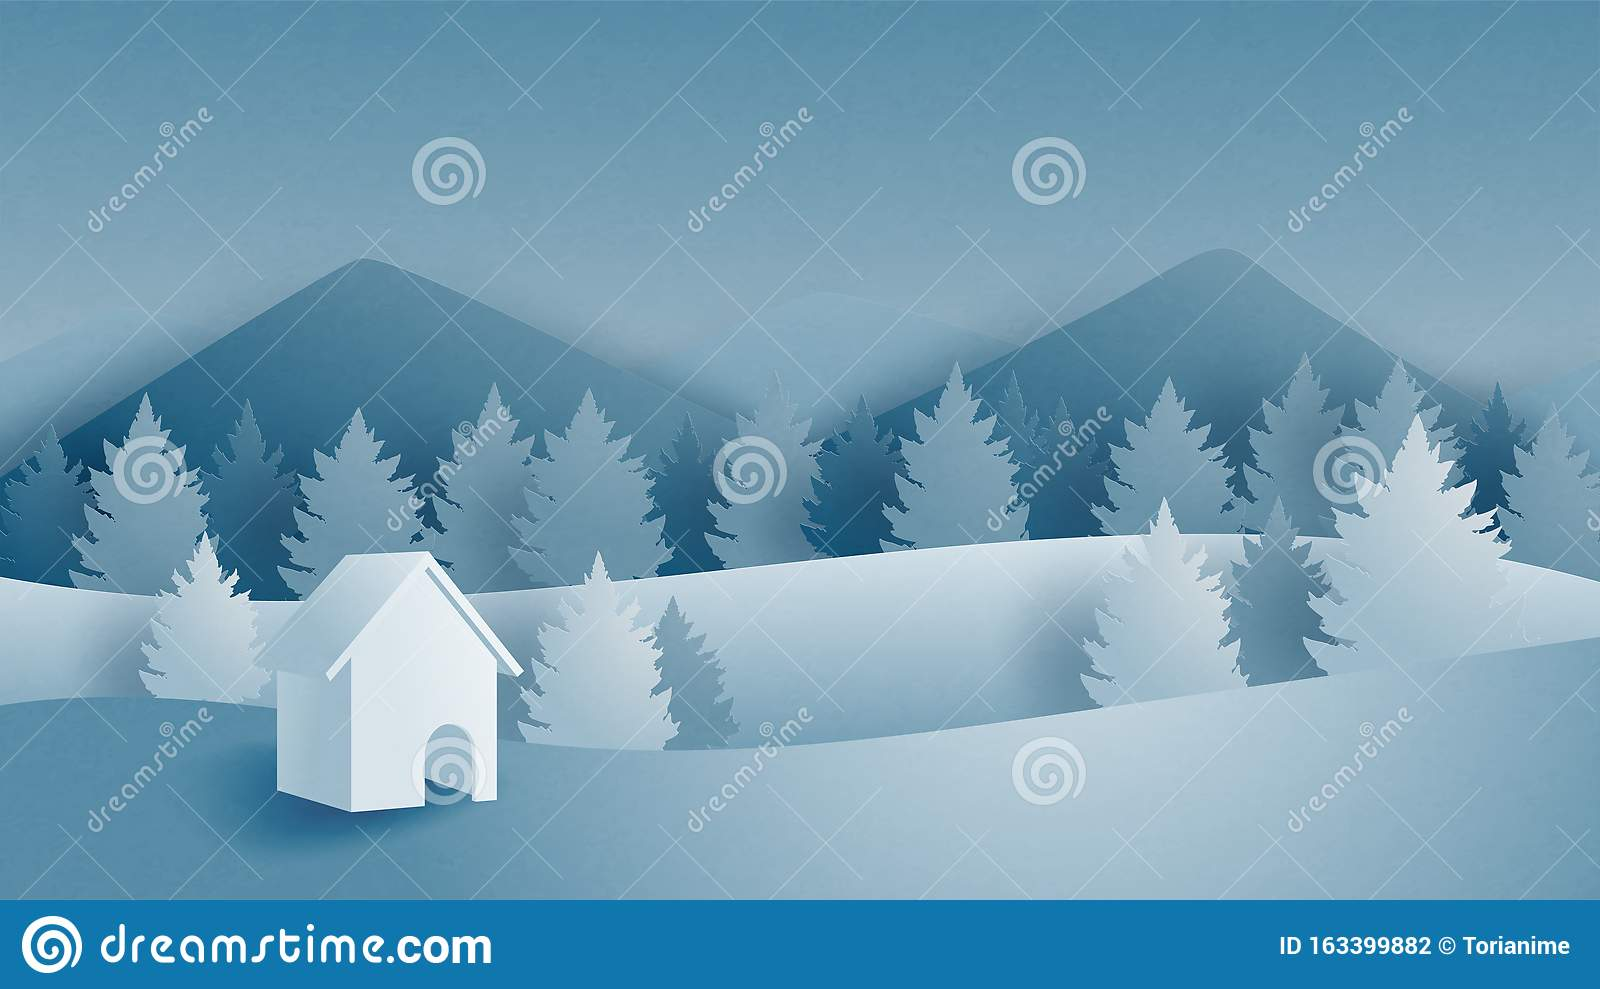 Winter Landscape With Mountain Forest And Cottage On Snow Filed In Paper Cut Style Vector Illustration Digital Craft Paper Art Stock Vector Illustration Of Forest Abstract 163399882